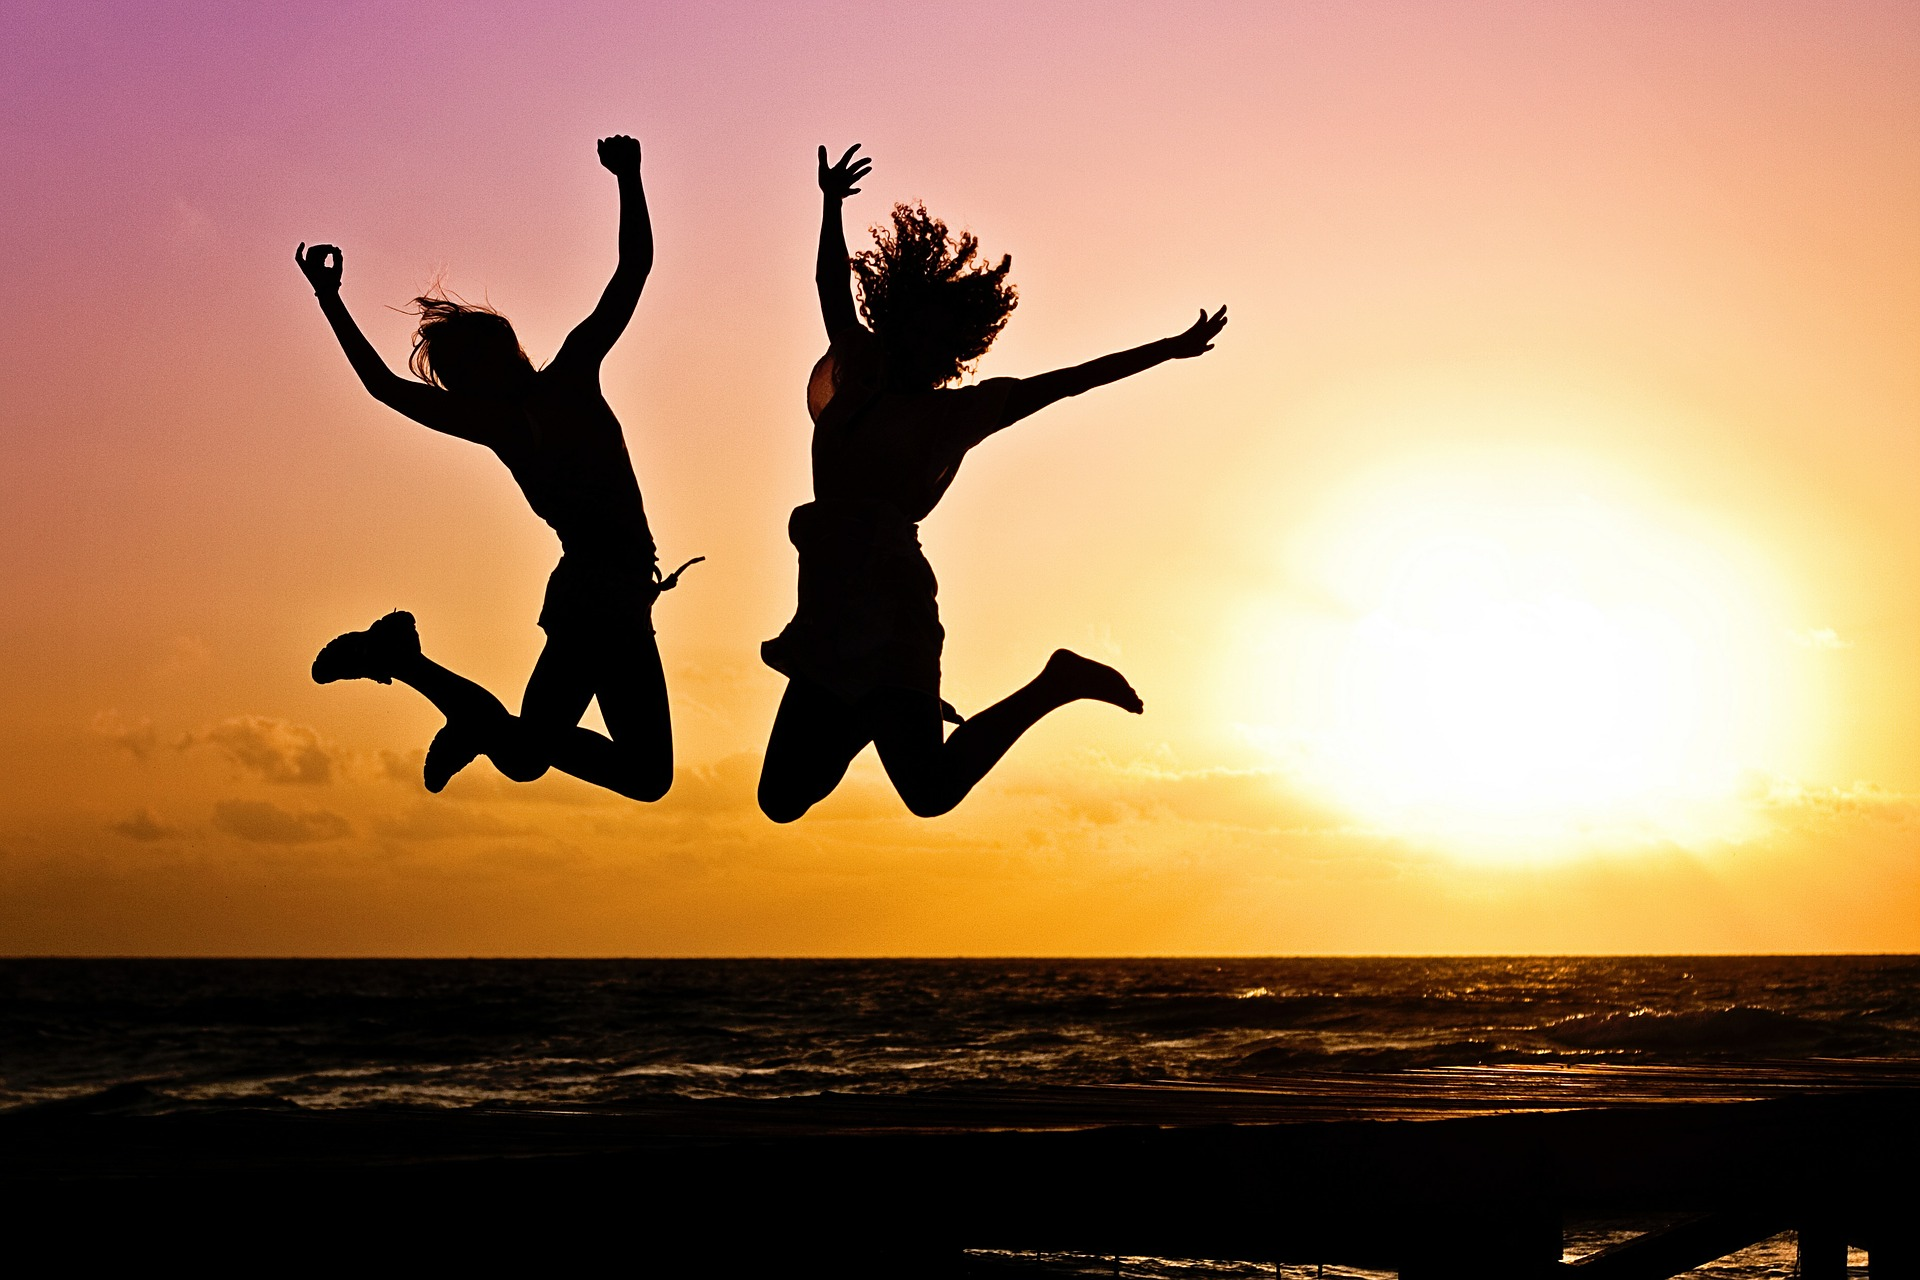 sunset w: youth jumping